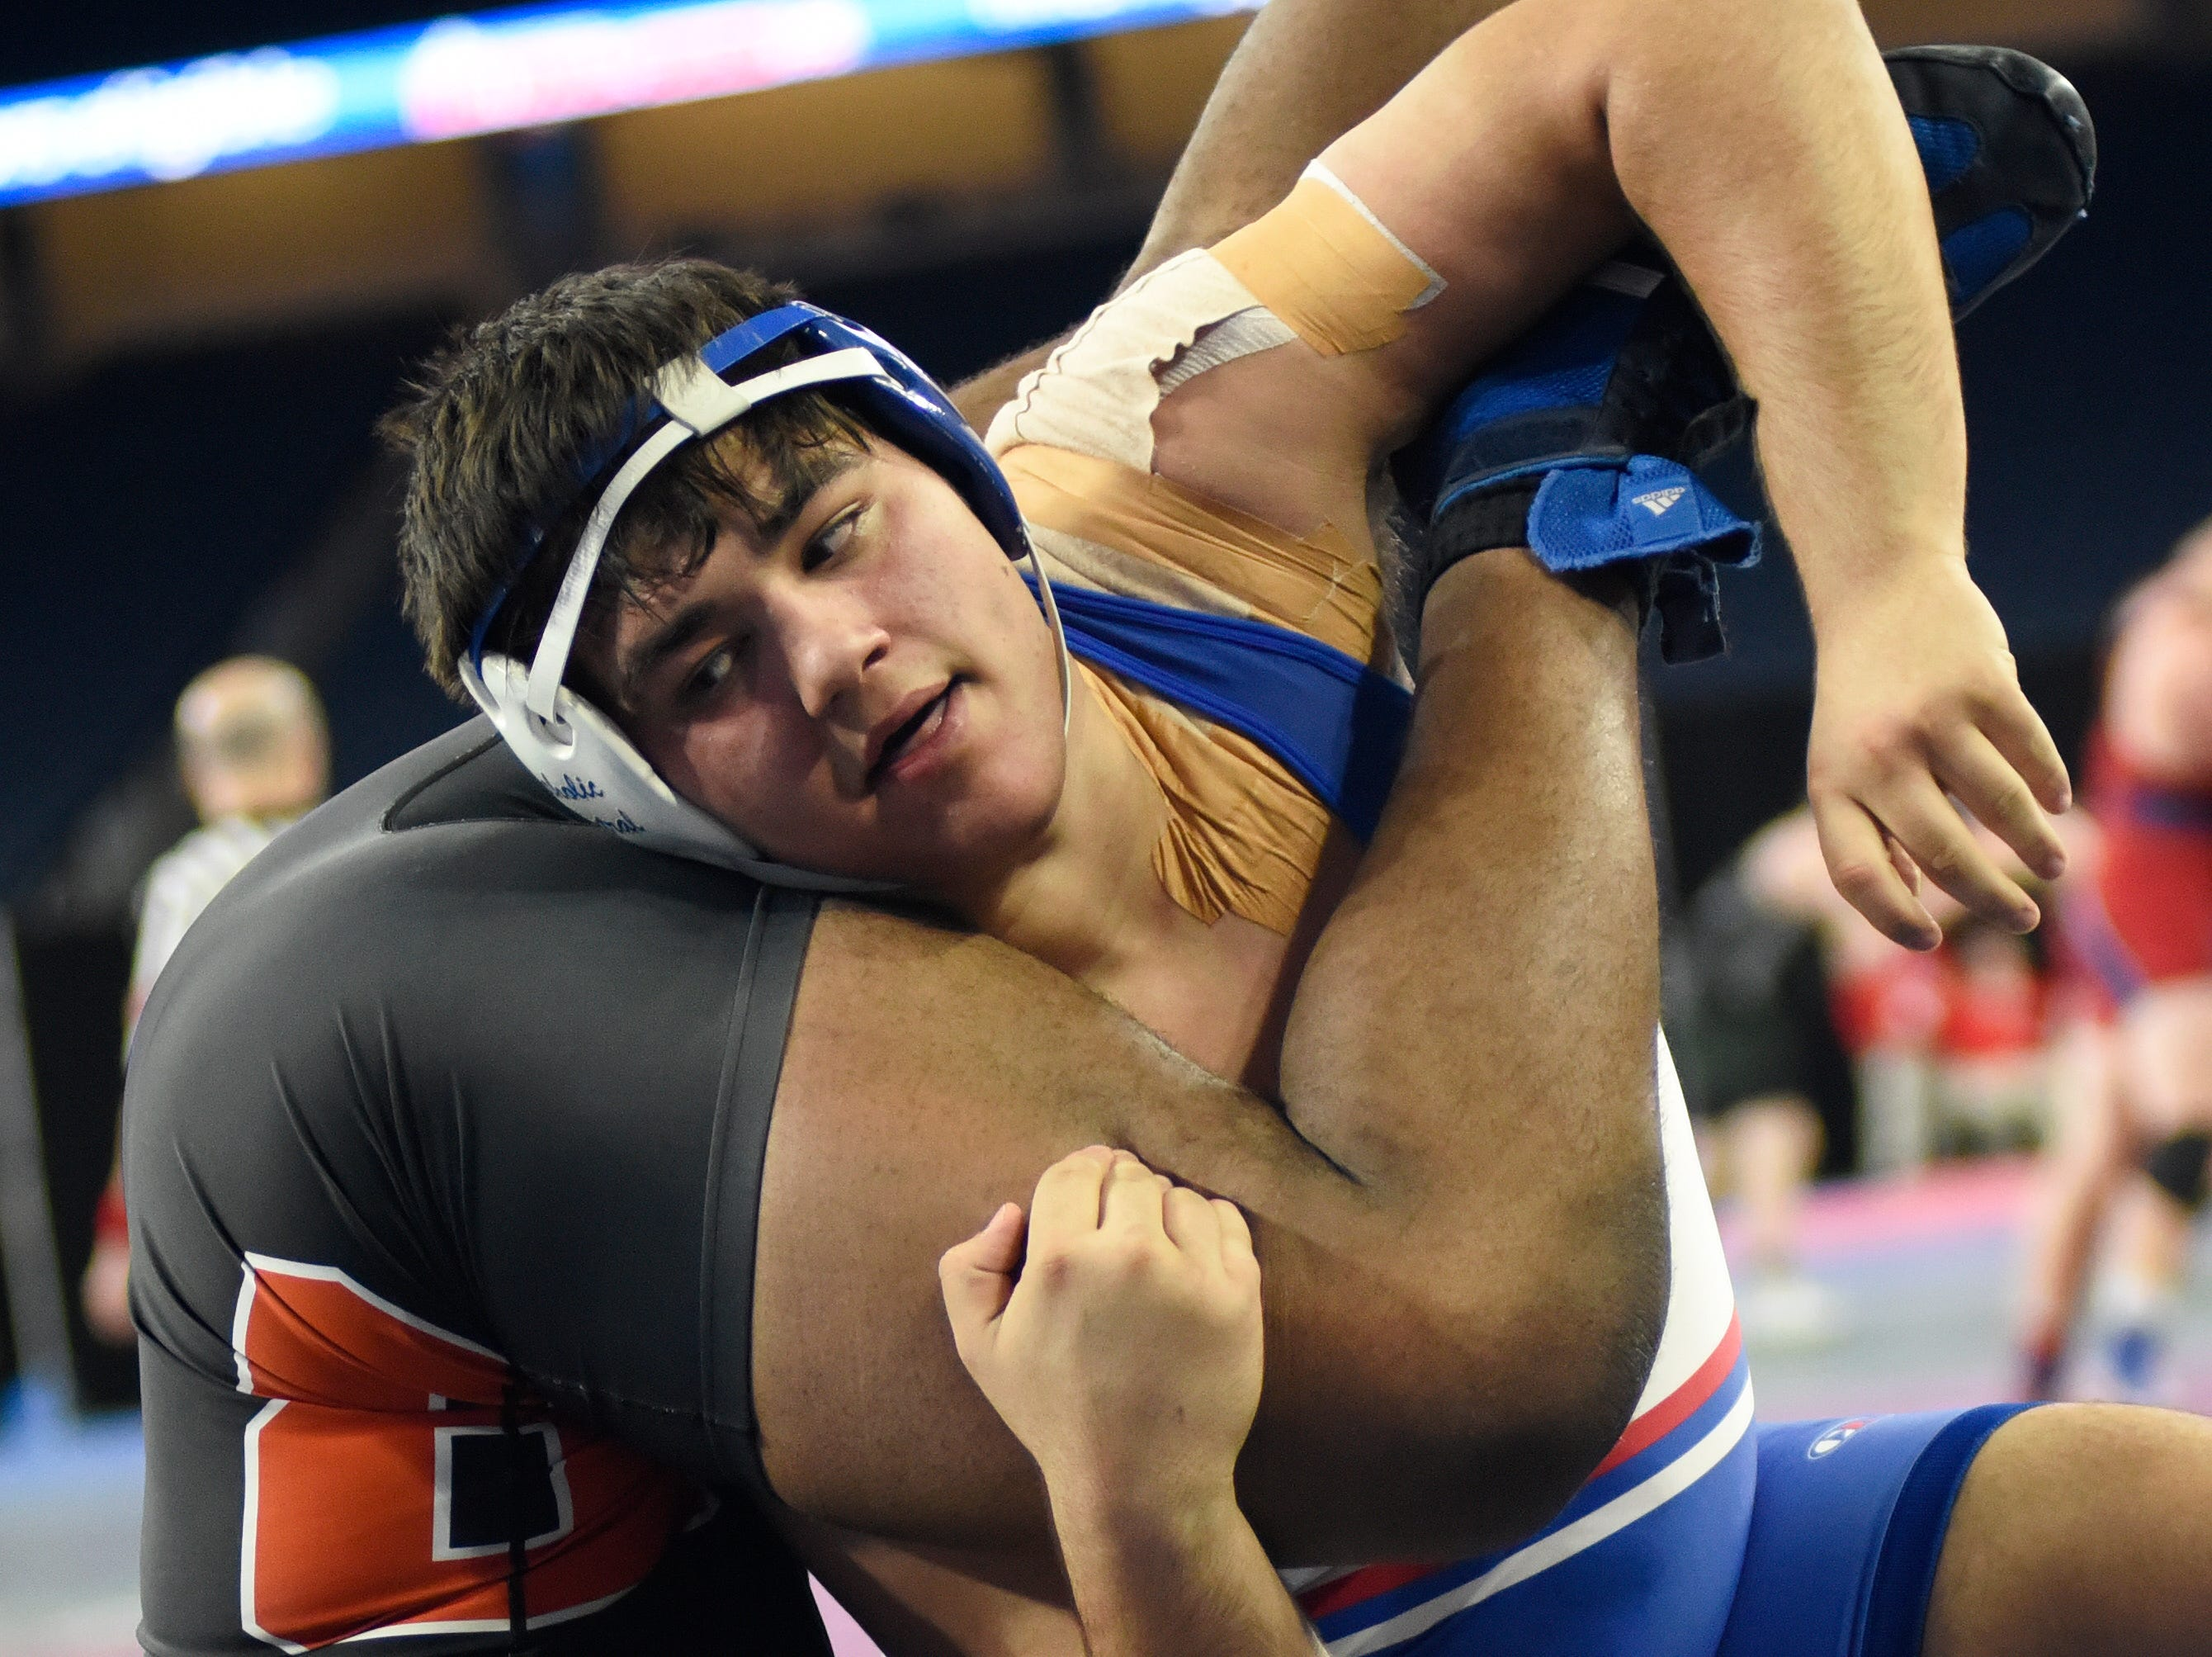 Steven Kolcheff of Detroit Catholic Central, top, wrestles Jaden Rice of Belleville in the 285 pound weight class semifinal. Kolcheff won by pin.